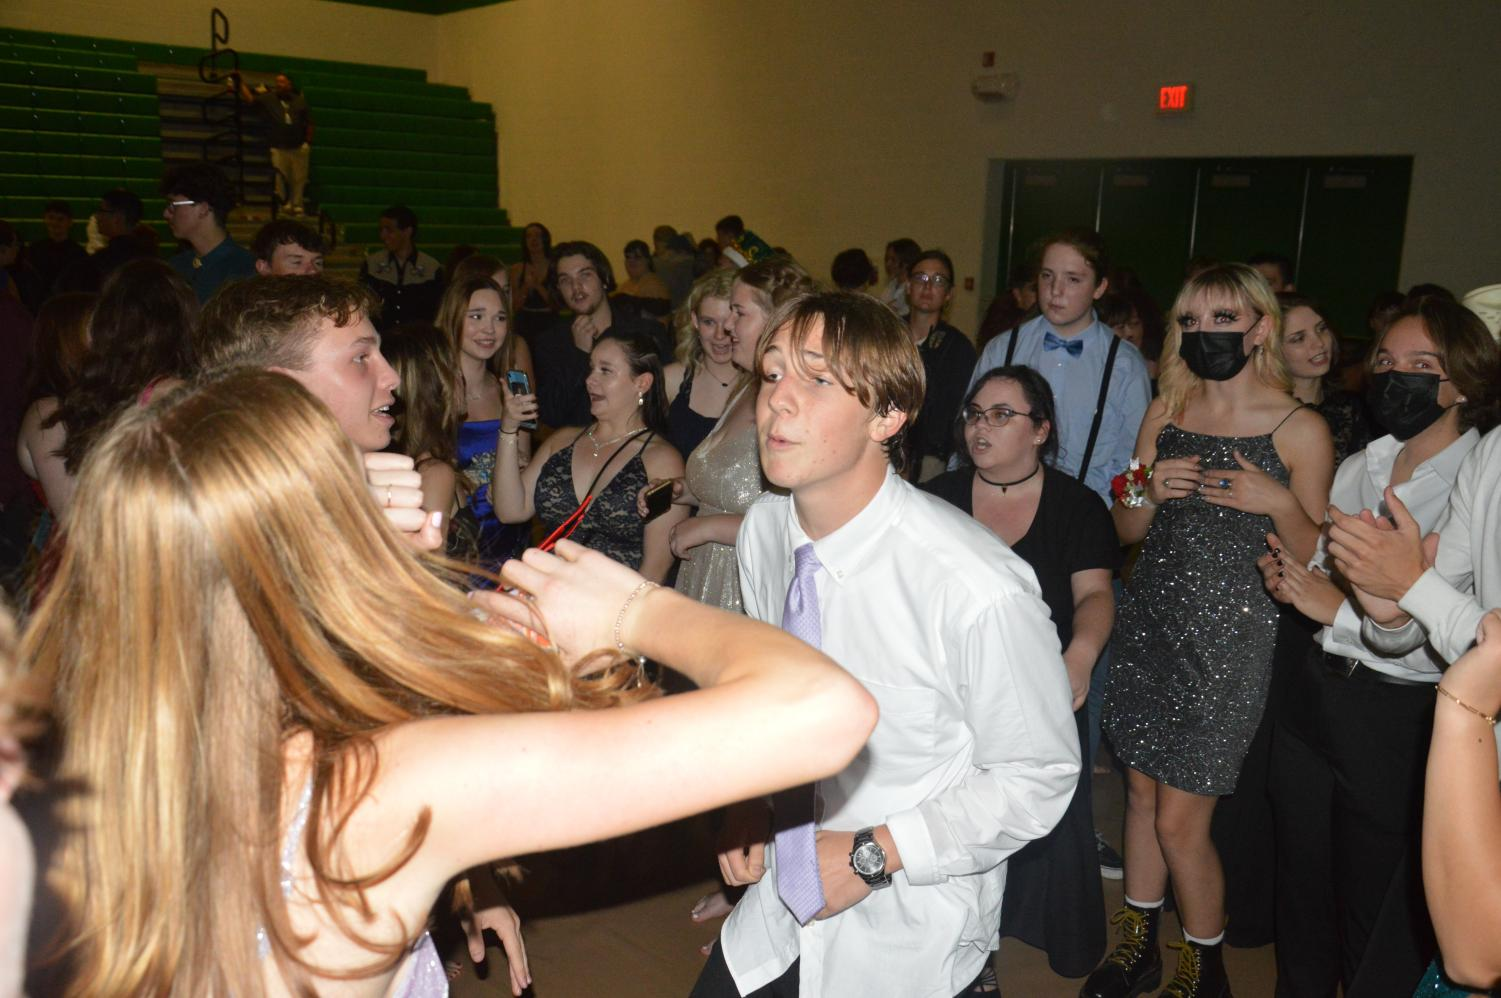 Homecoming+Dance+%28Photos+by+Haley+Waughtal%29